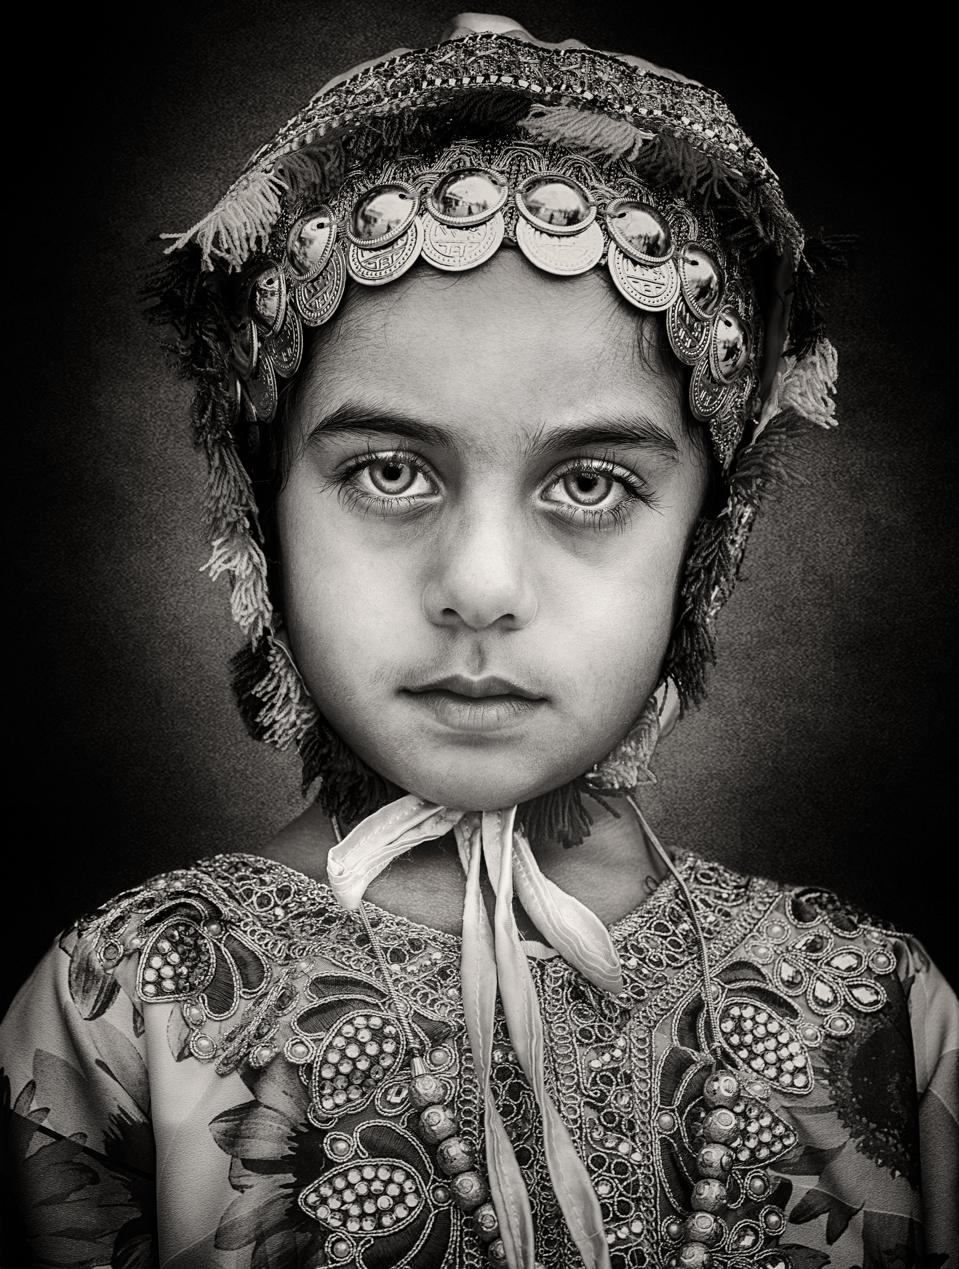 Young girl from Oman